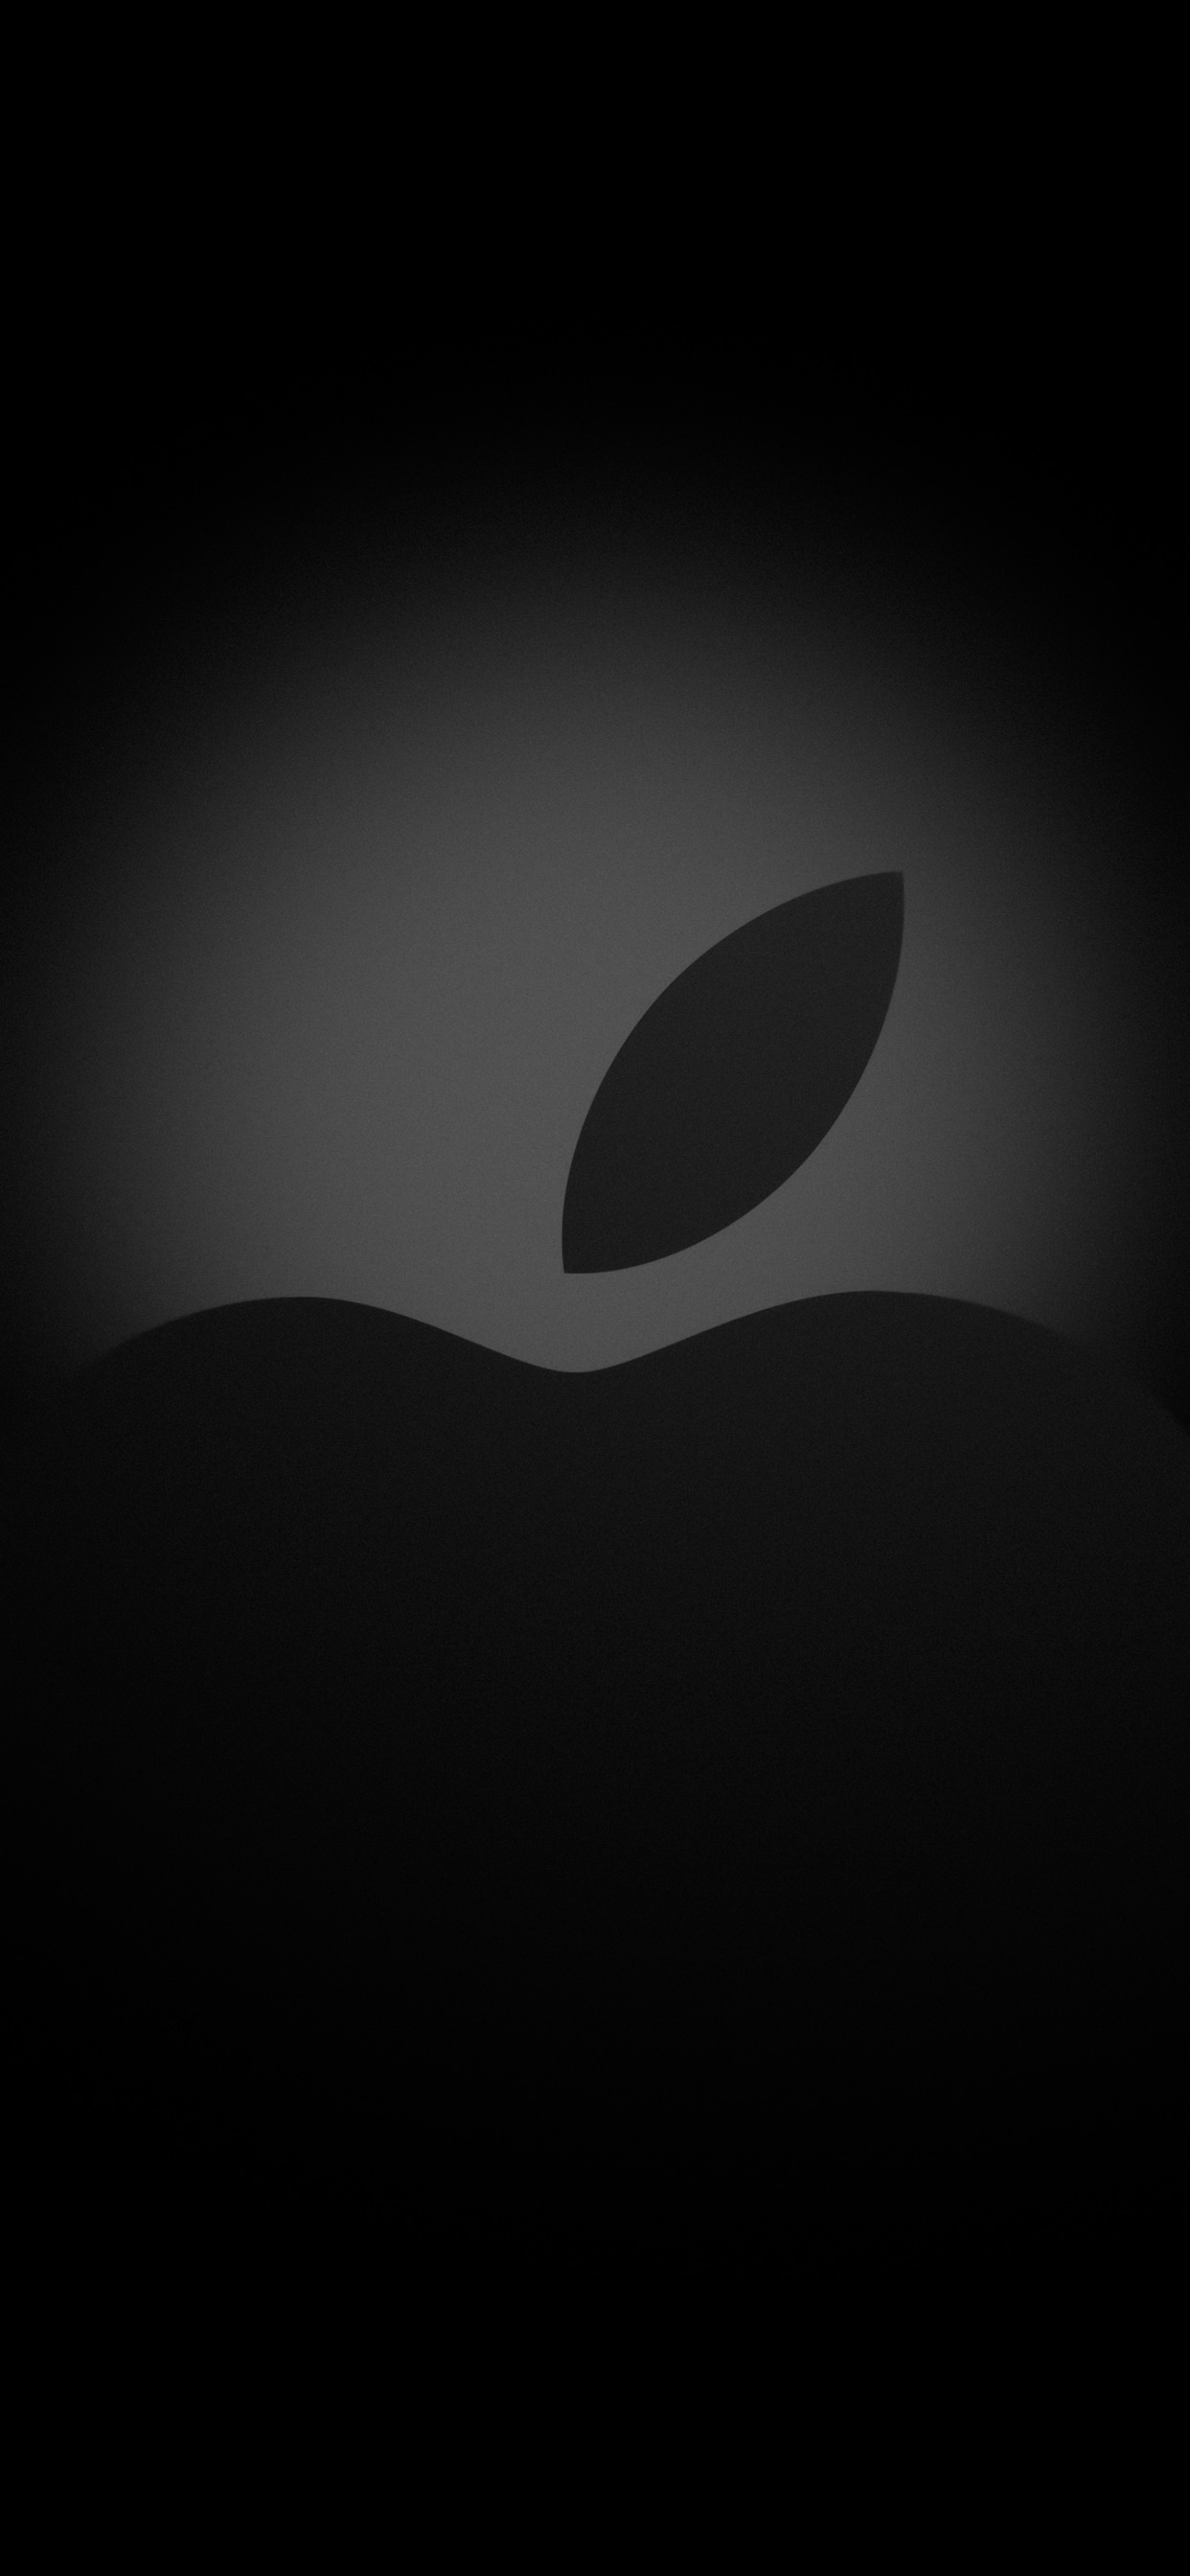 iPhone wallpaper apple event march 2019 v1 Apples March 25th event